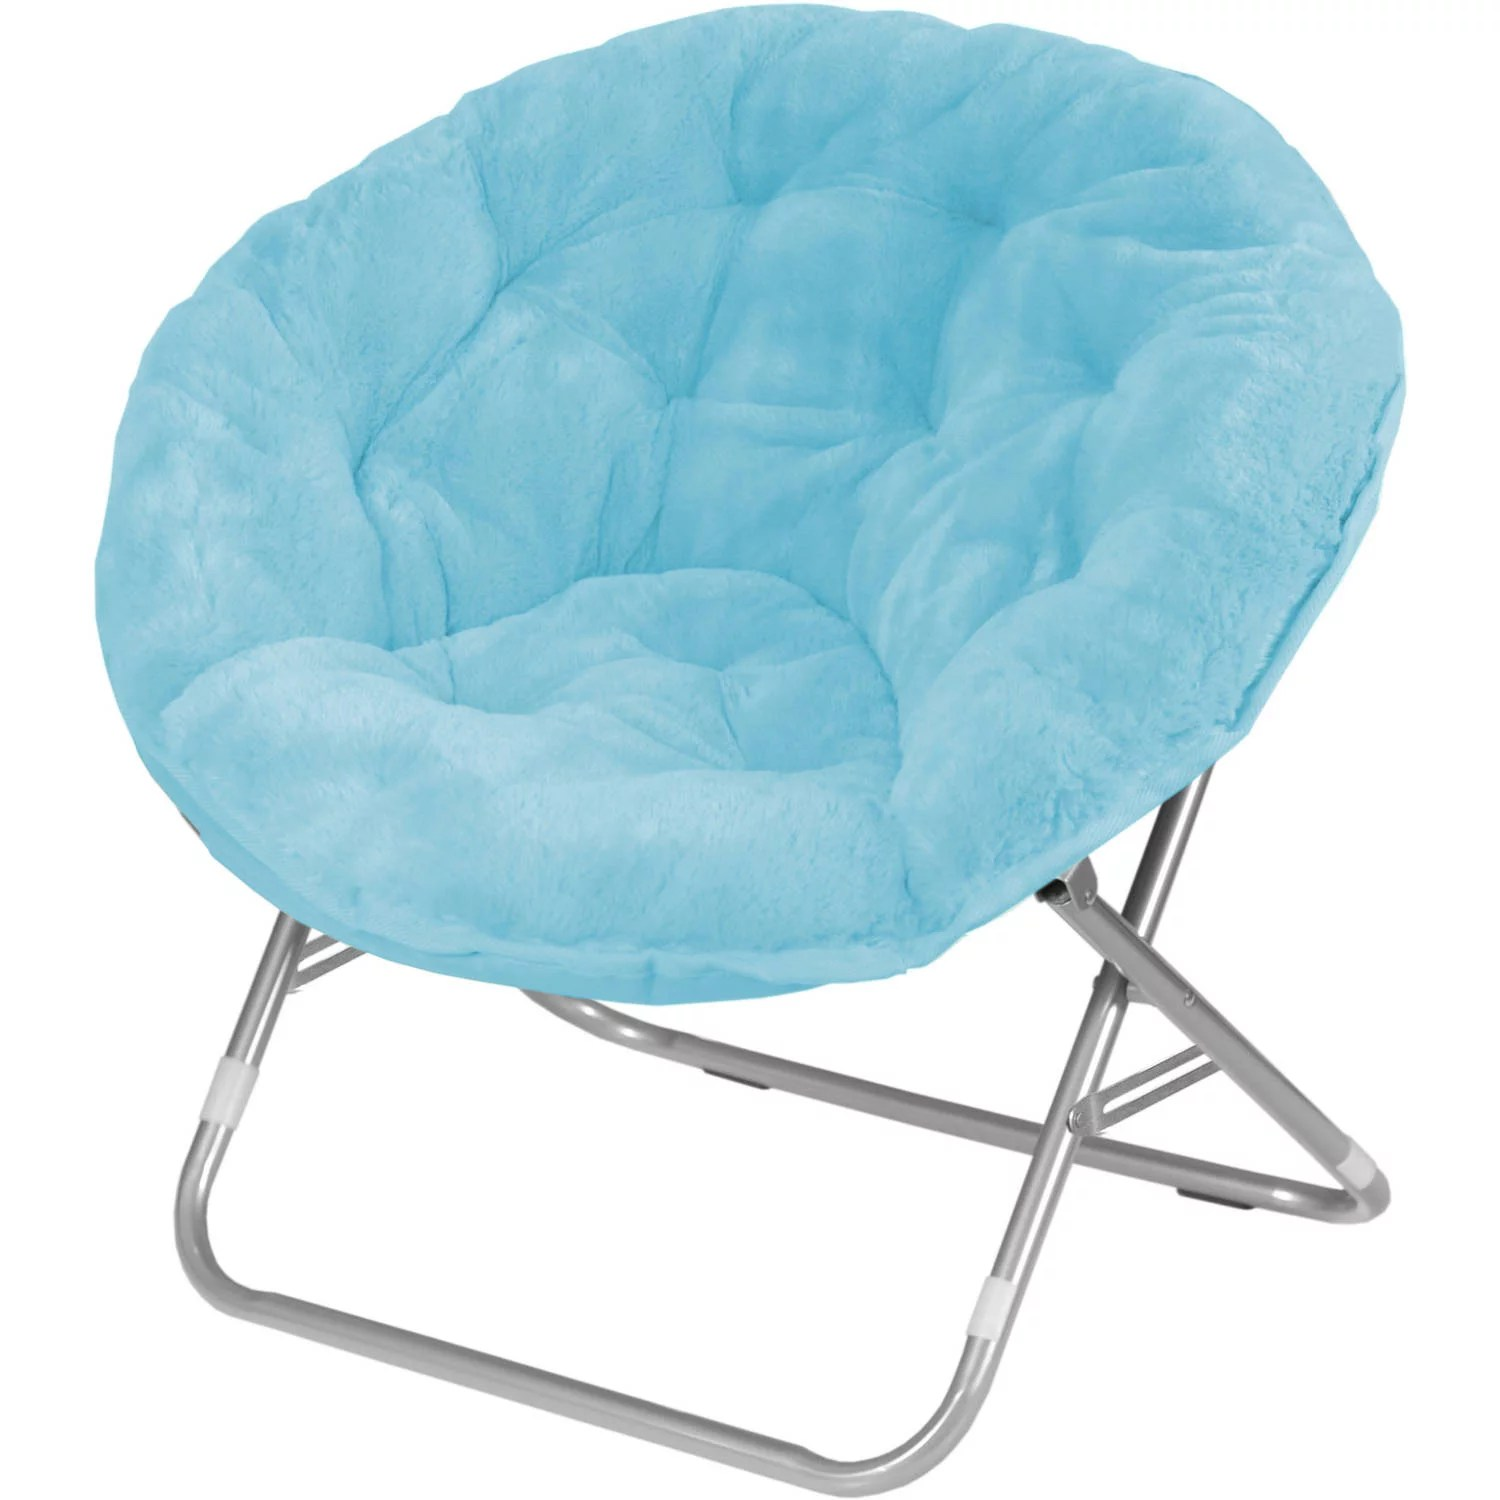 Chairs For Dorm Rooms Faux Fur Saucer Moon Chair Dorm Room Lounging Furniture